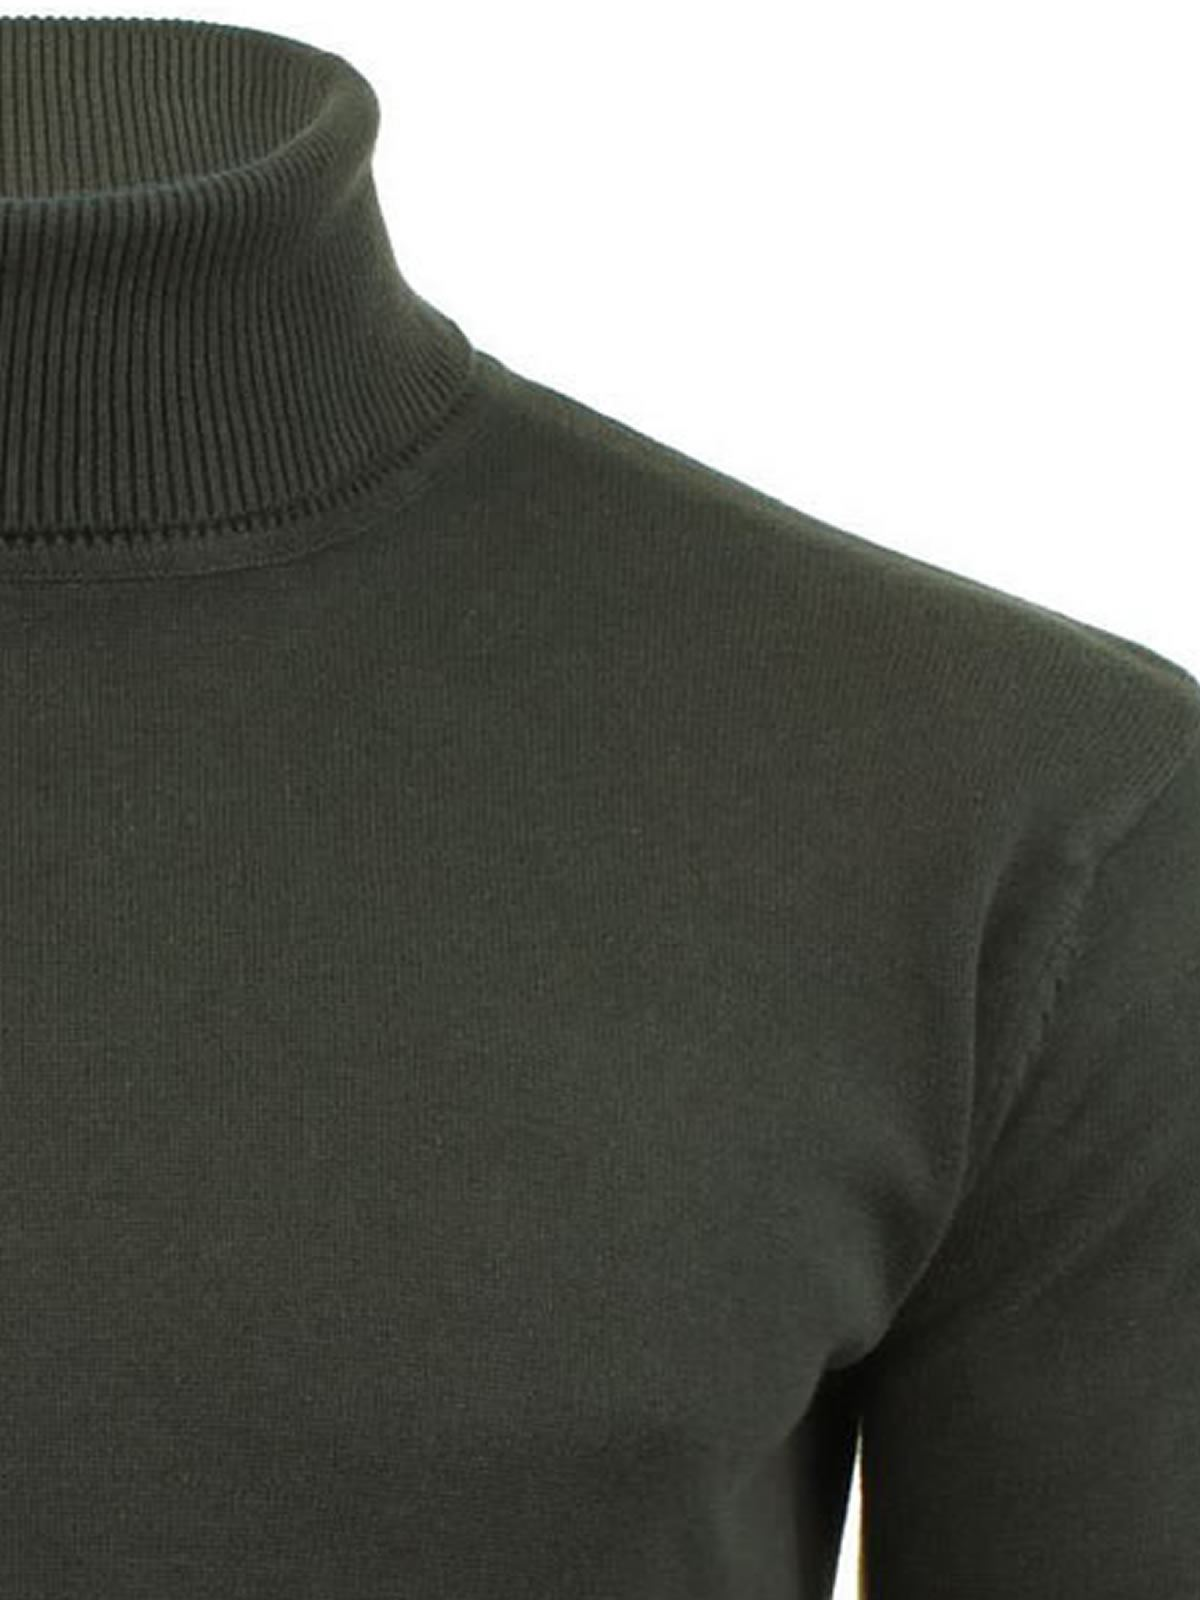 Mens-Jumper-Brave-Soul-Roll-Turtle-Neck-Cotton-Pull-Over-Sweater